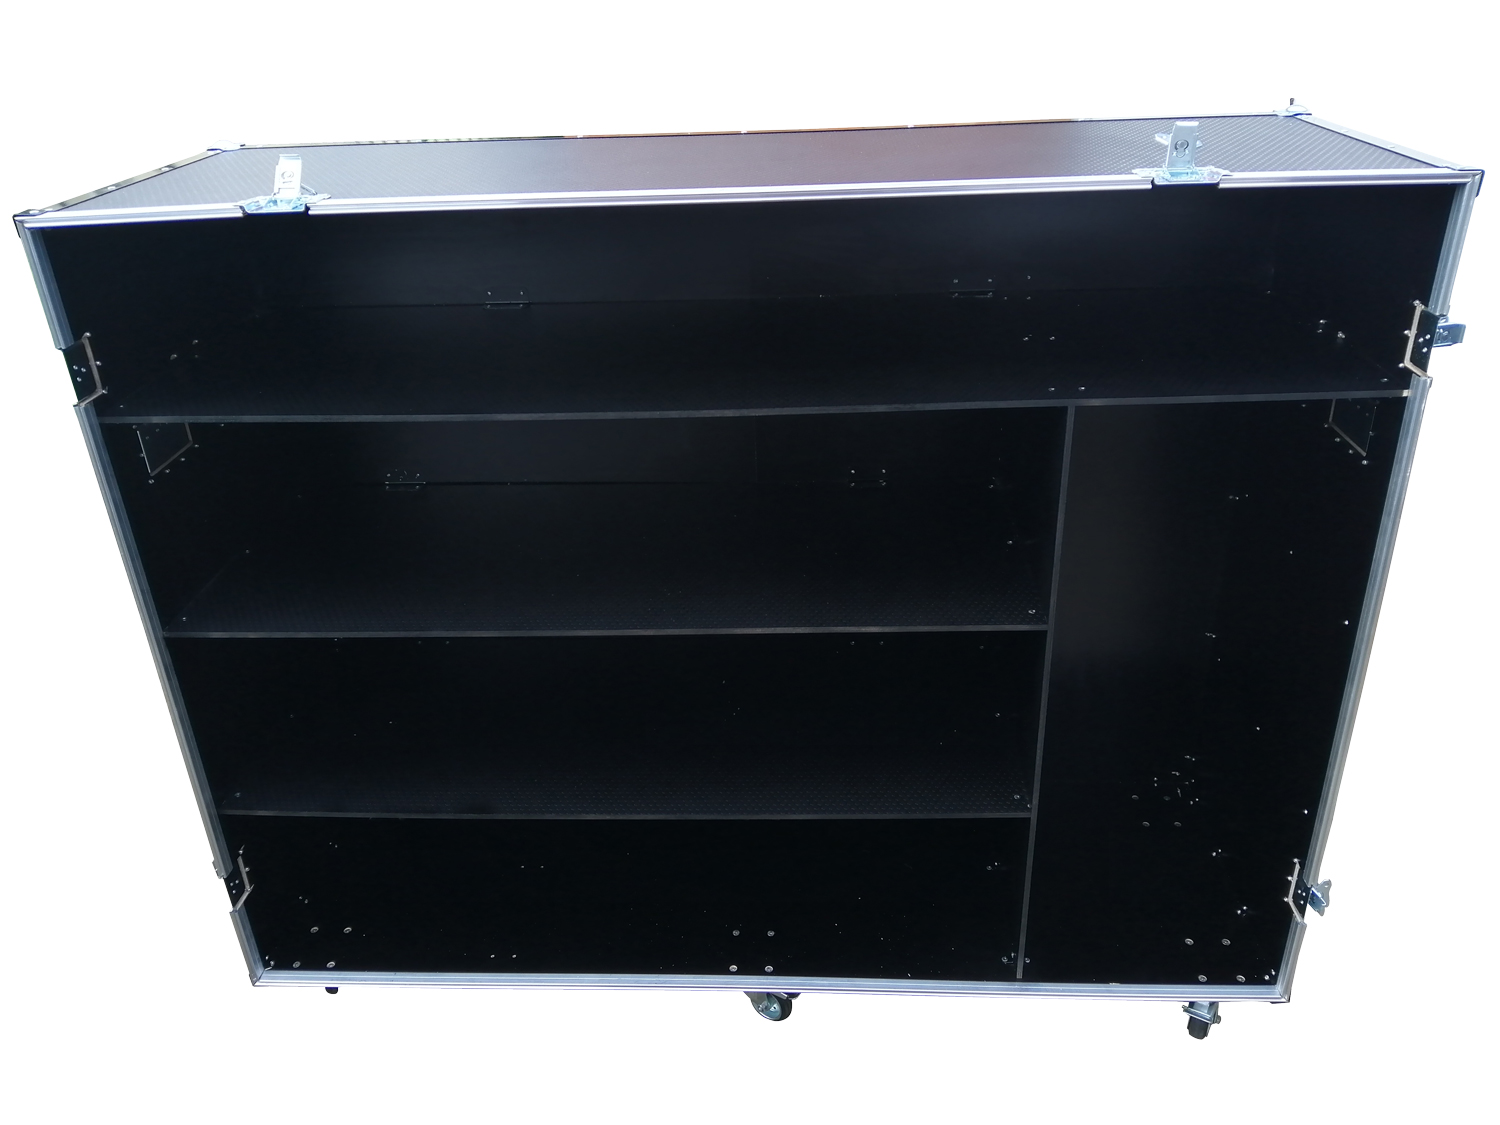 Divided flight case for parts storage